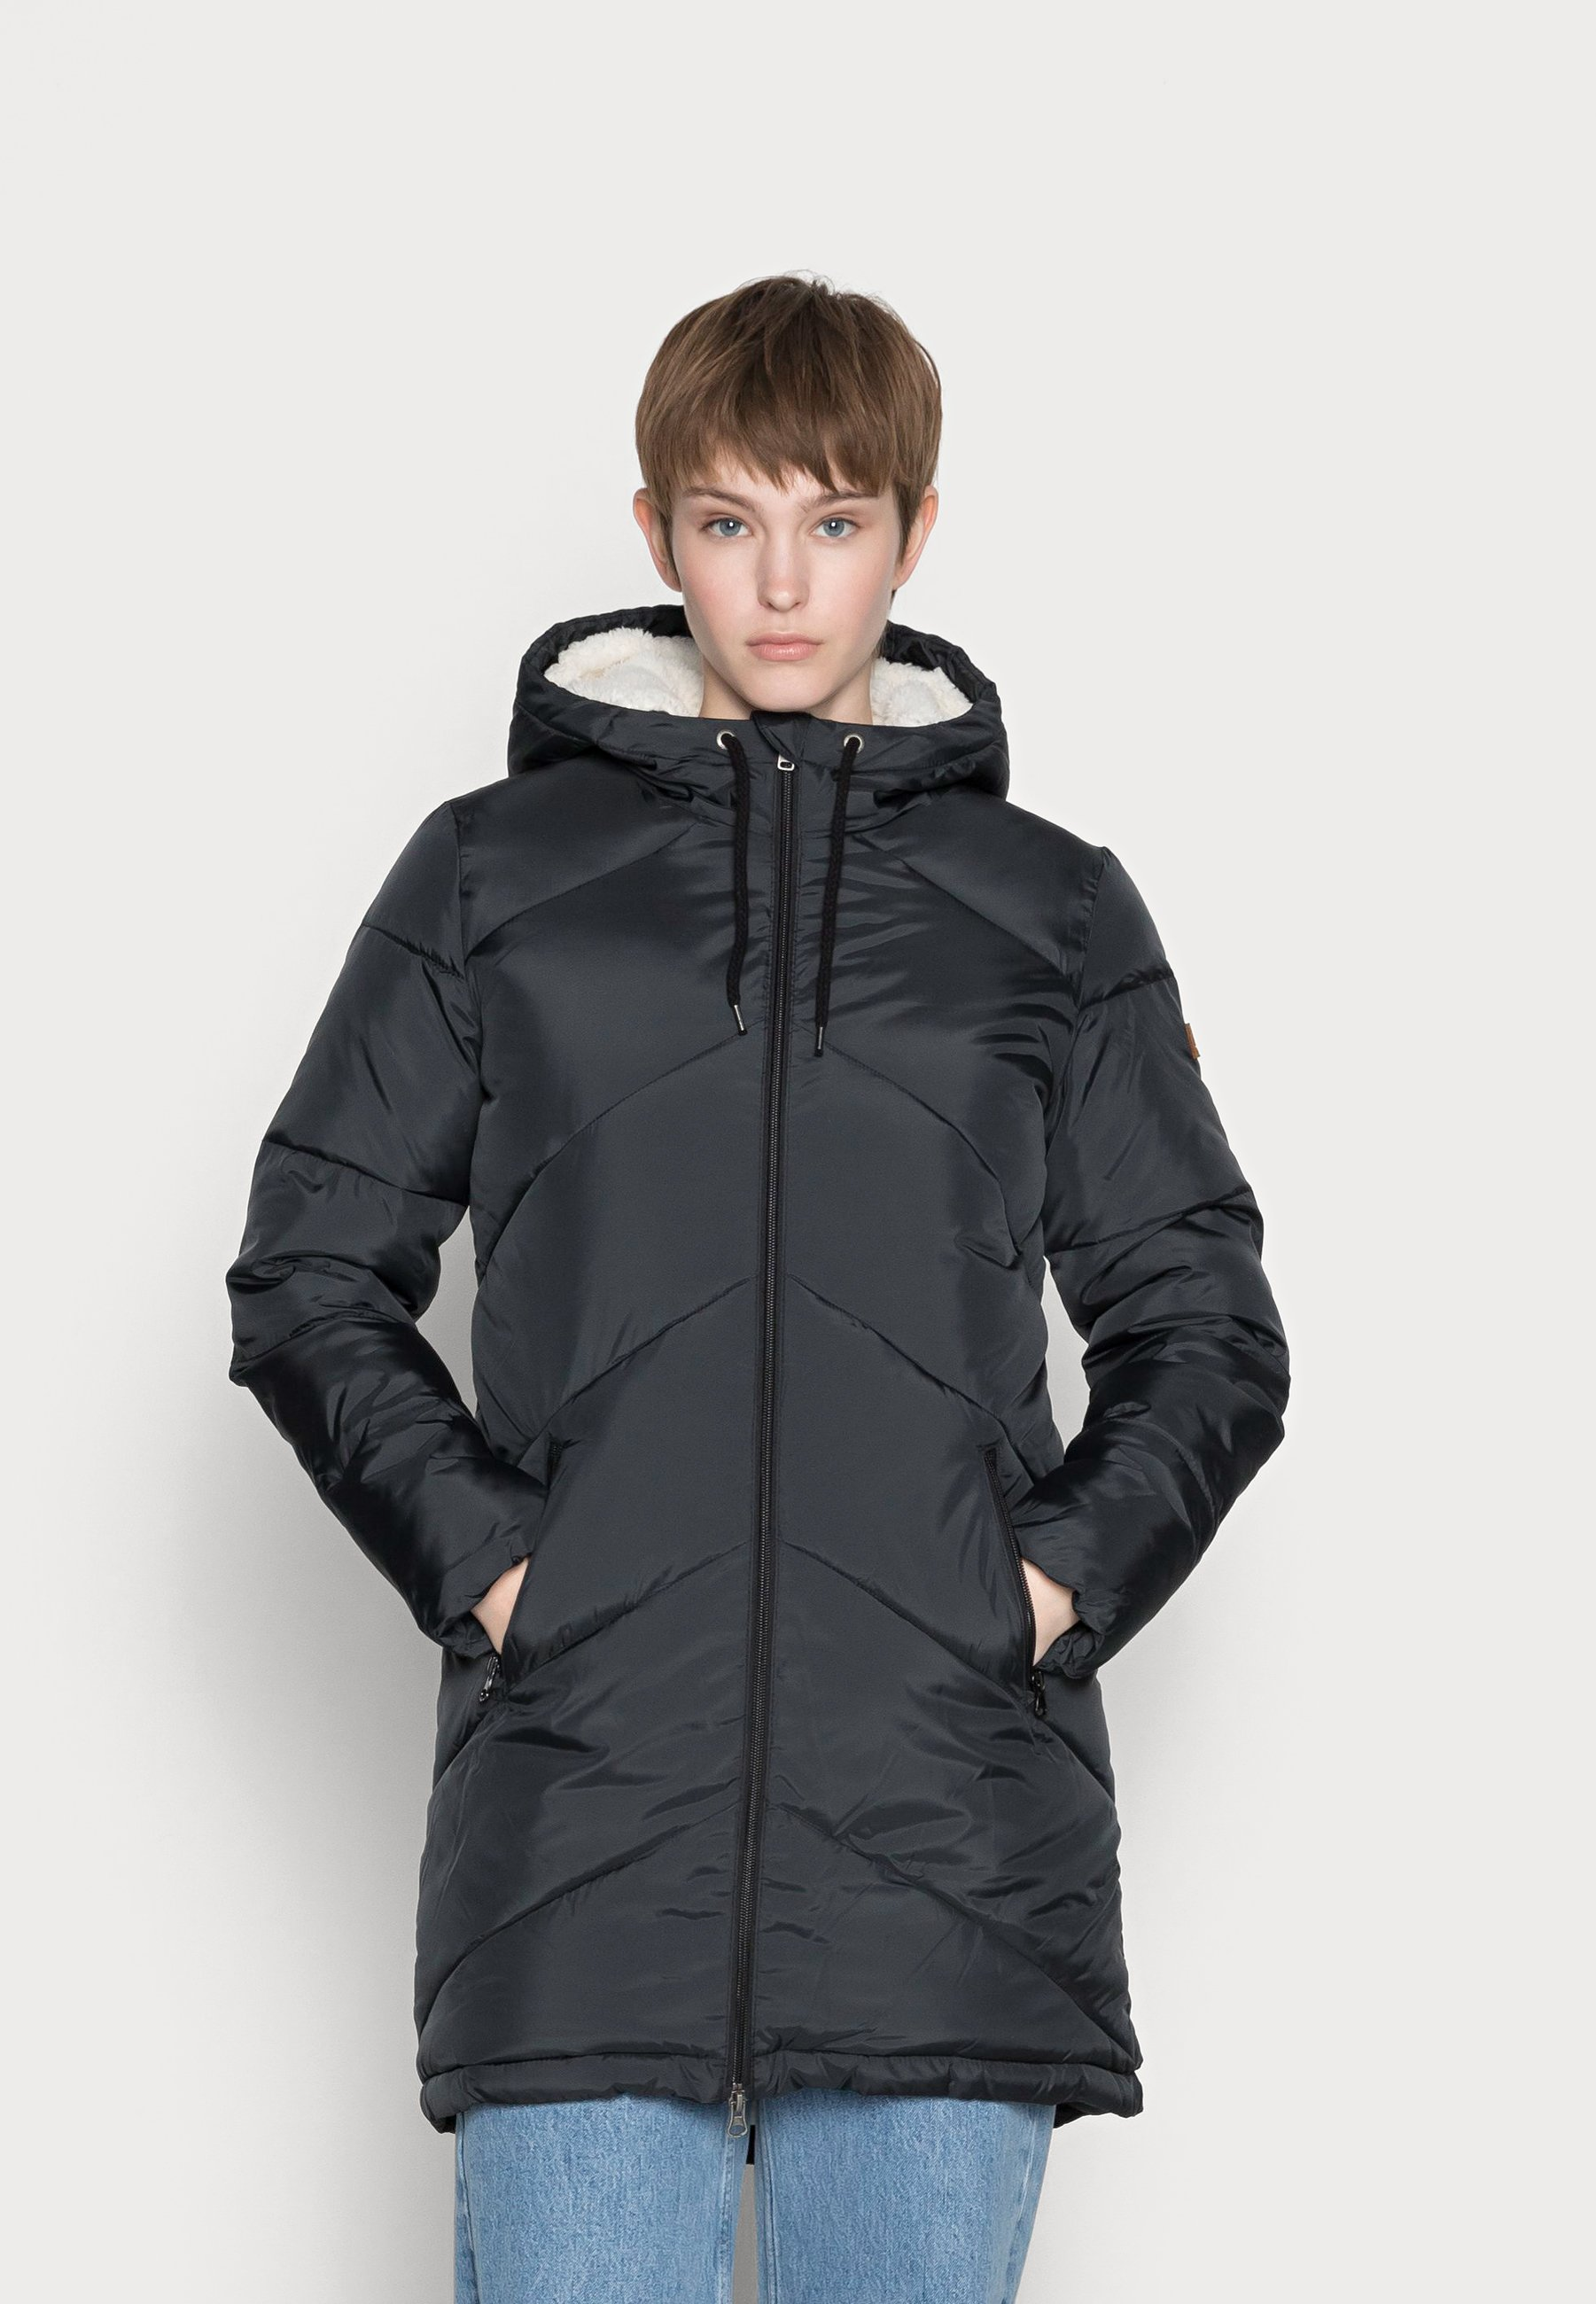 Donna STORM WARNING - Cappotto invernale